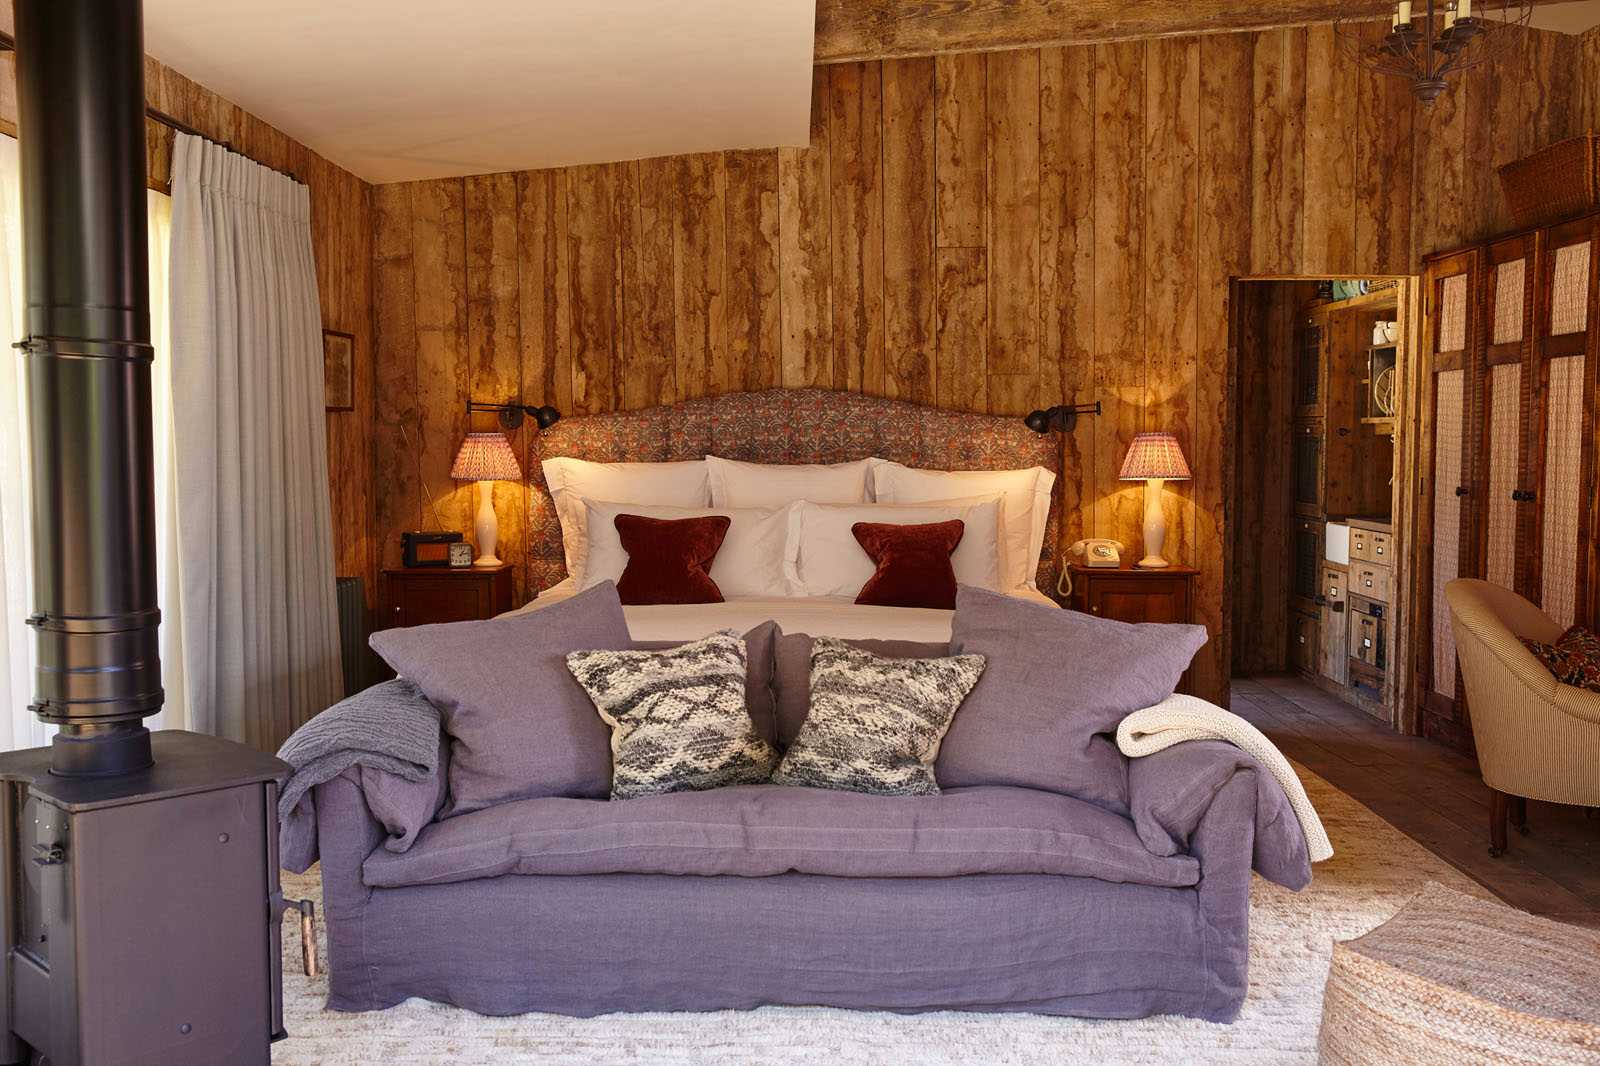 Cozy Country Cabin Bedroom